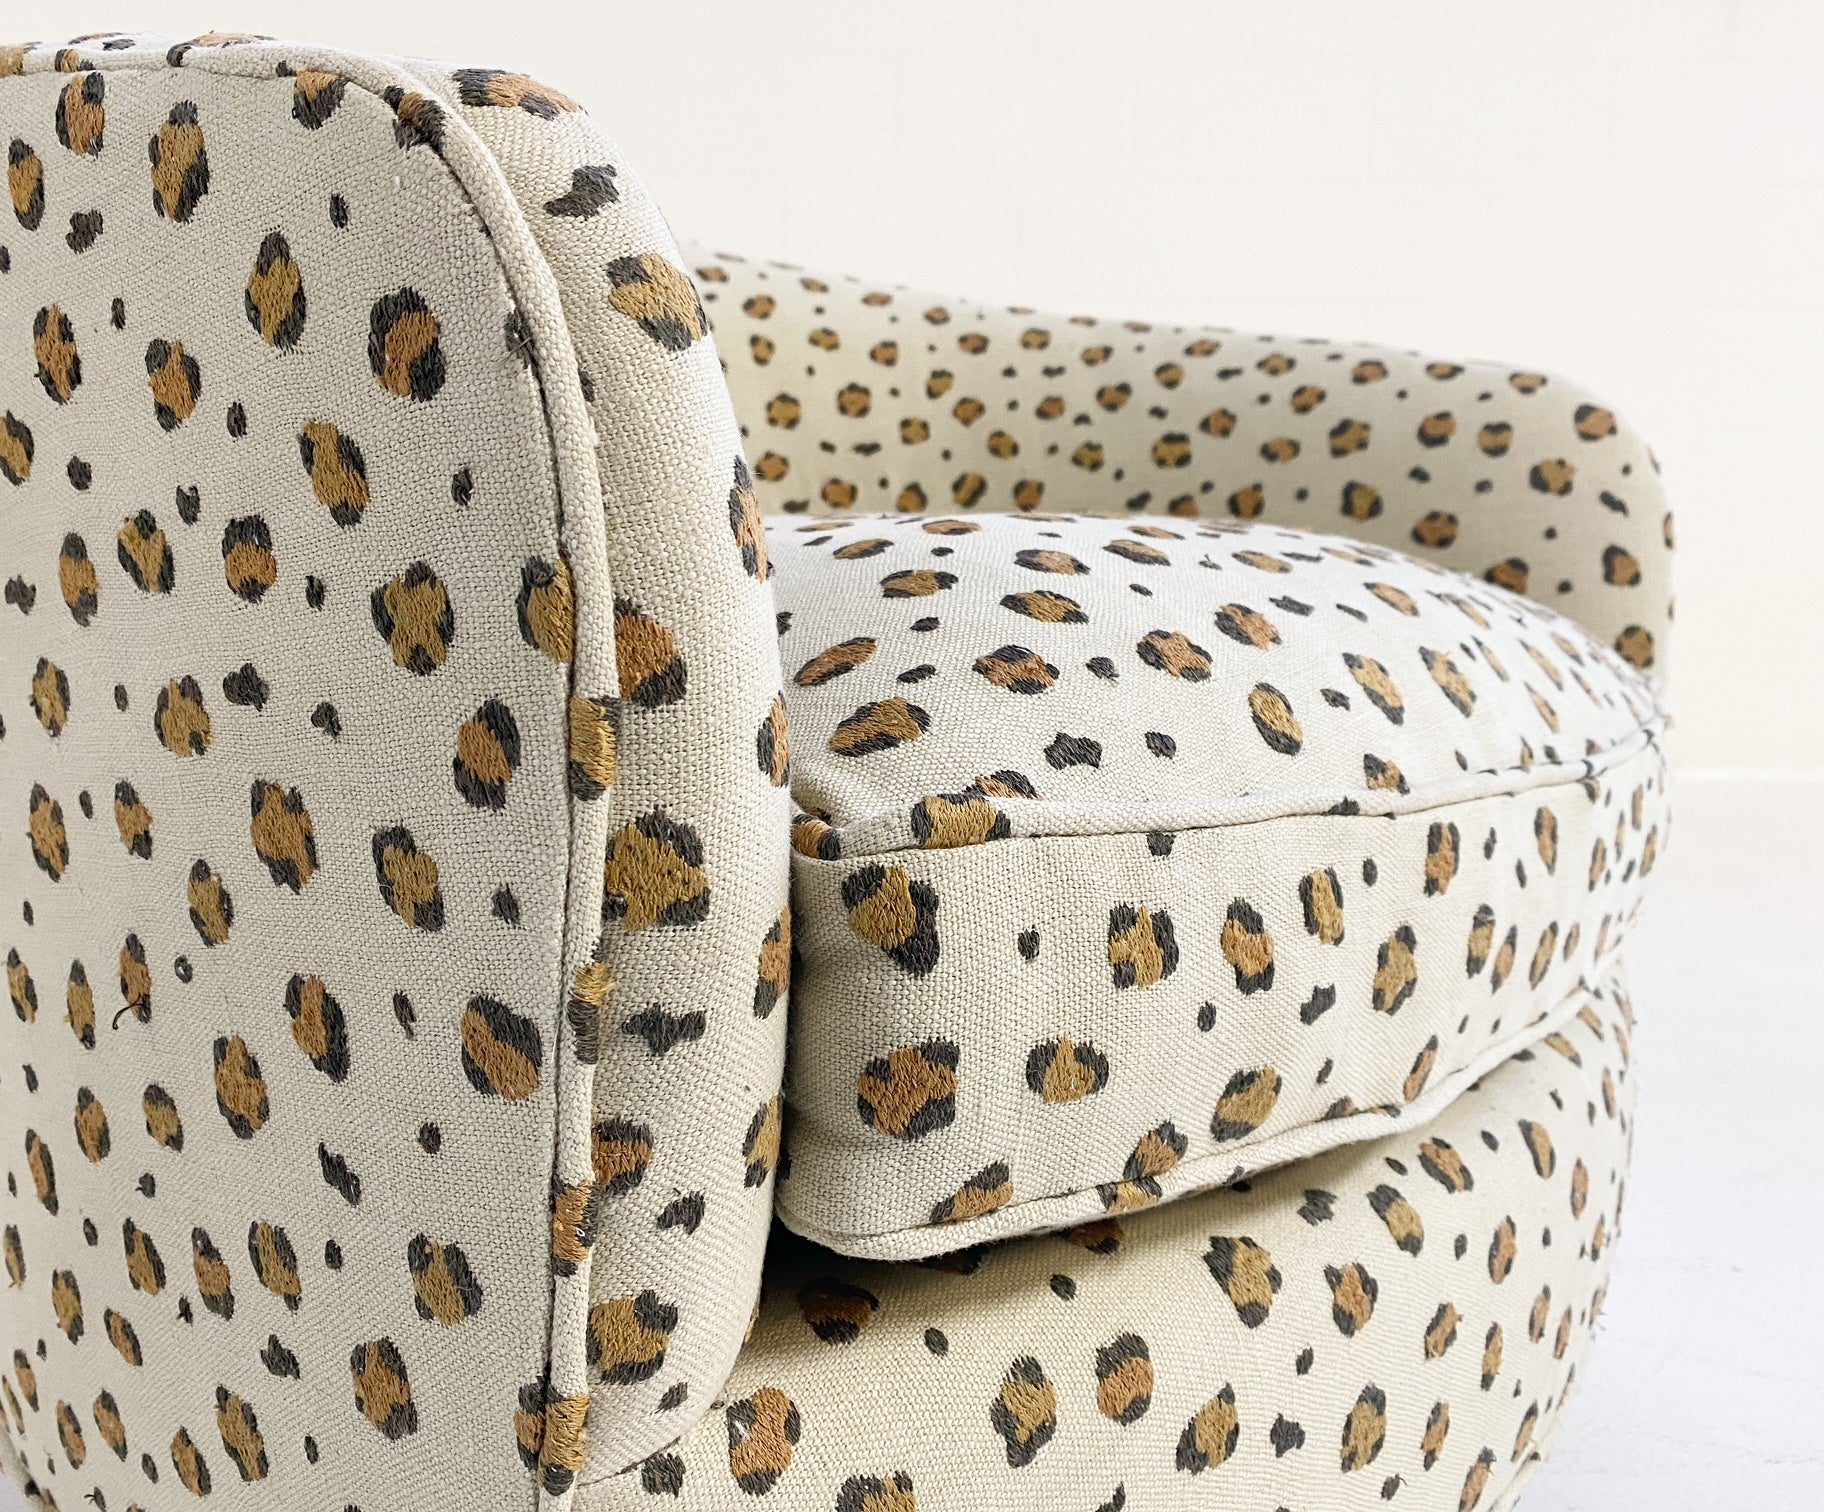 Swivel Lounge Chair in Chelsea Textiles 'Snuggle' Leopard Fabric